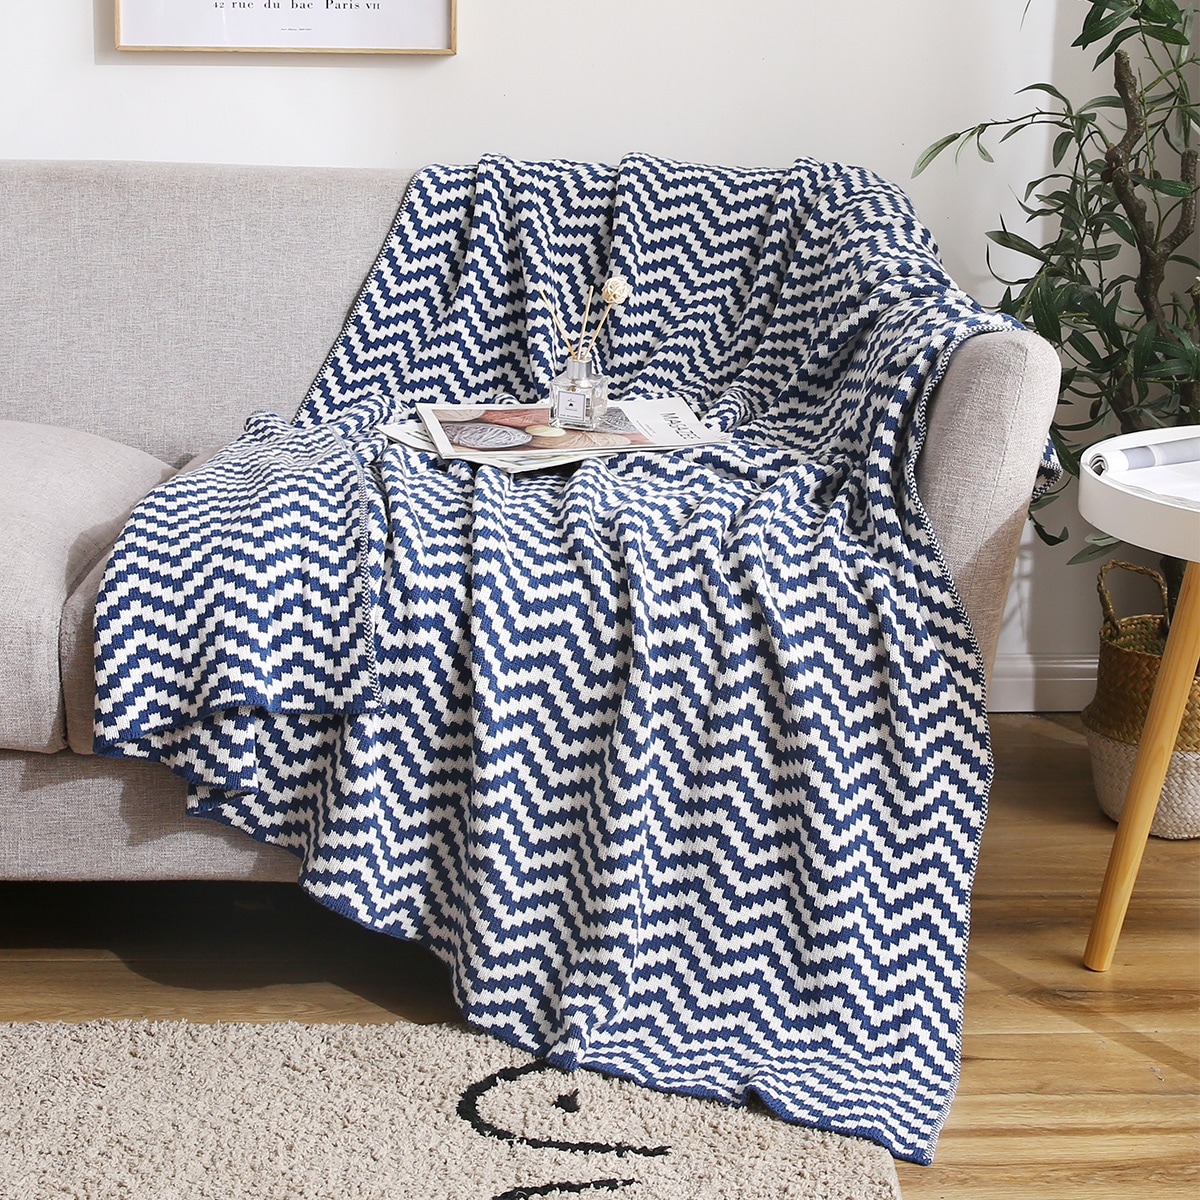 Chevron Pattern Blanket